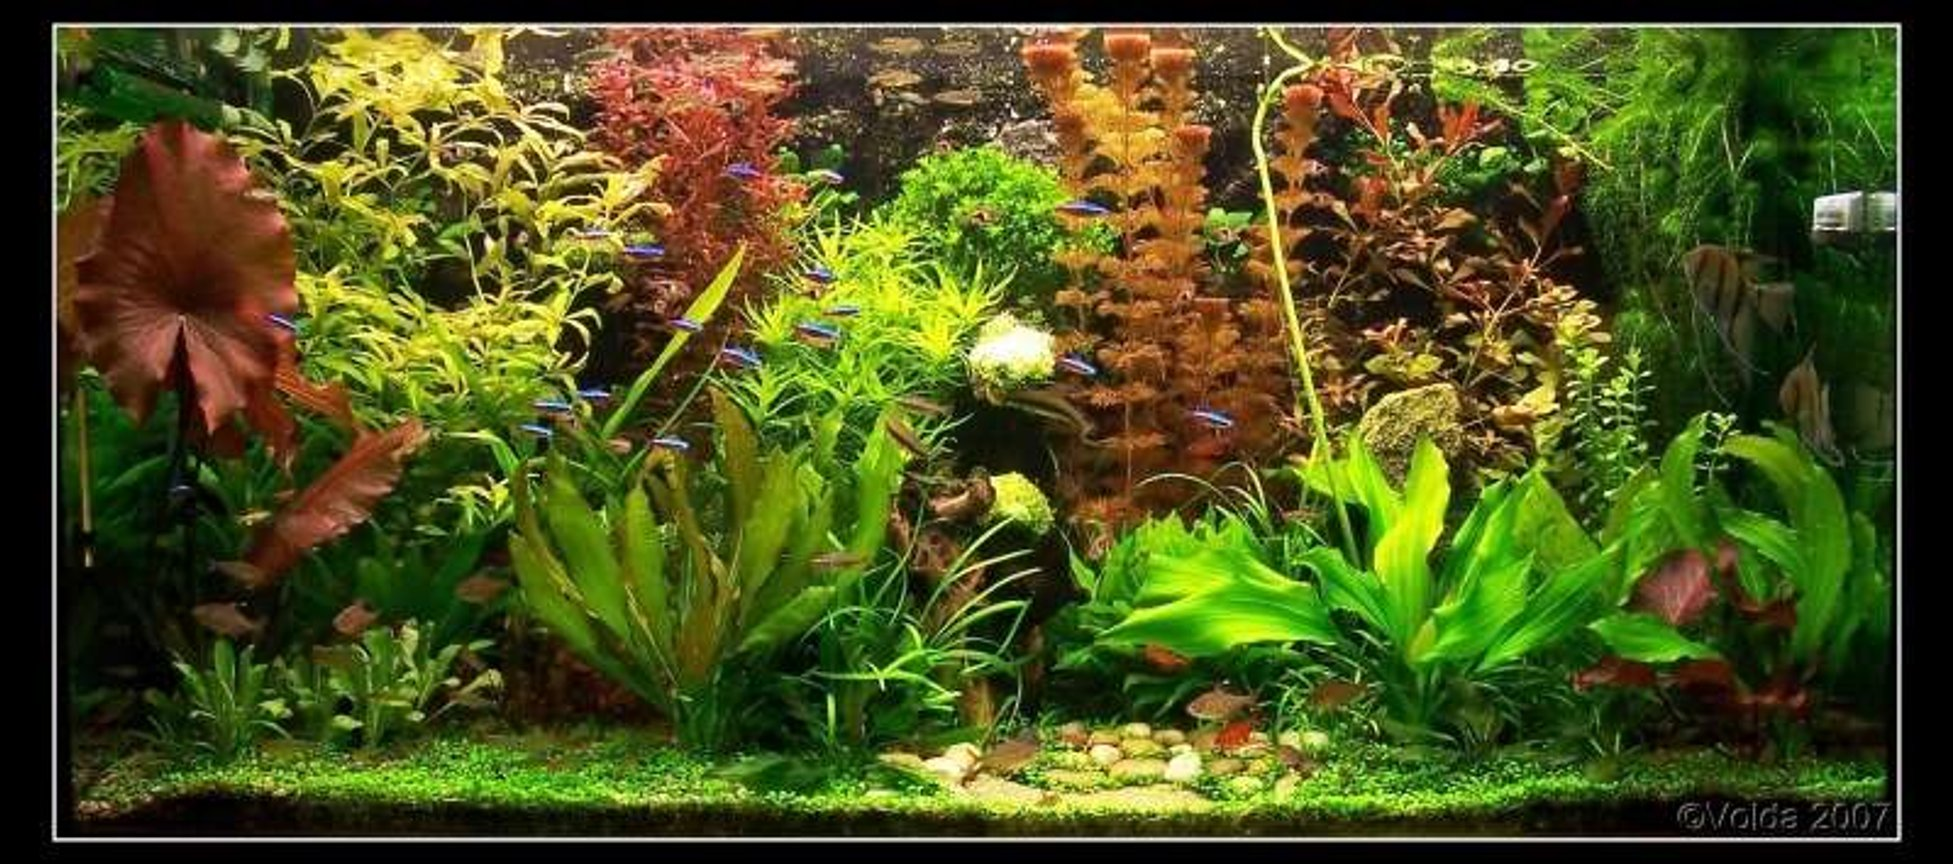 103 gallons planted tank (mostly live plants and fish) - My planted aquarium-465 liter- march 2007